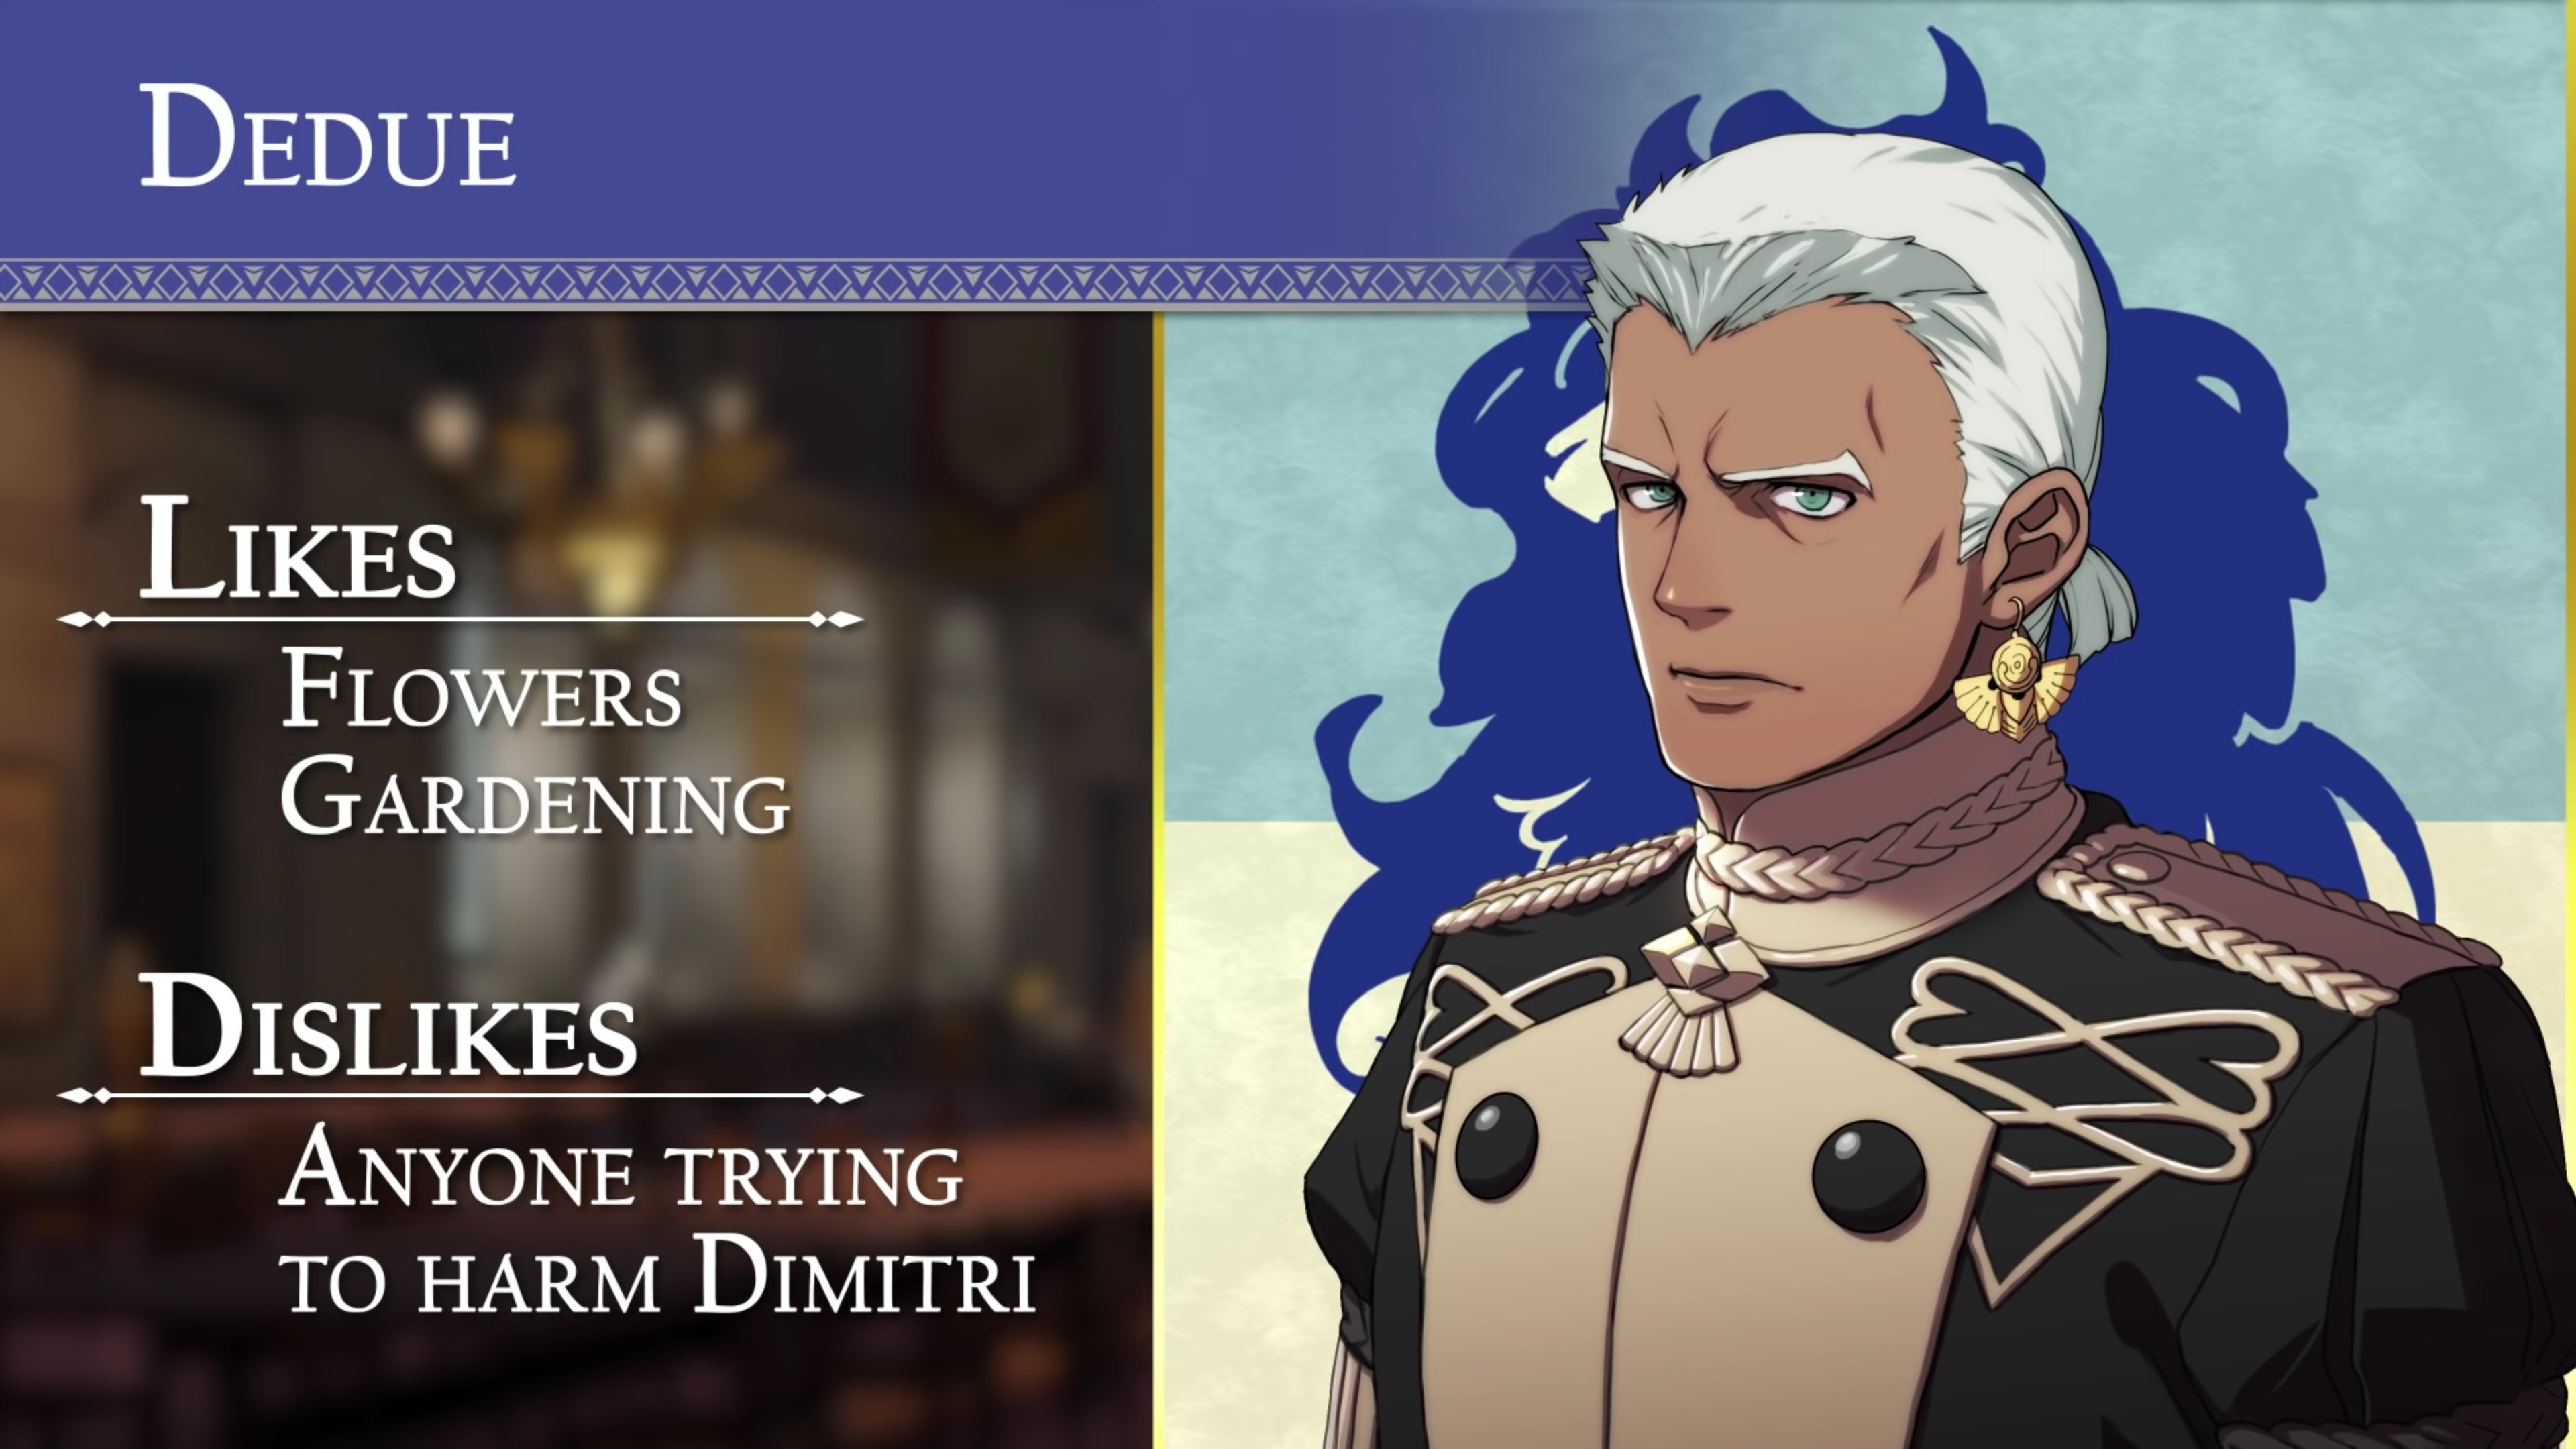 How To Recruit Dedue In Fire Emblem Three Houses Dedue molinaro is one of playable character in fire emblem: how to recruit dedue in fire emblem